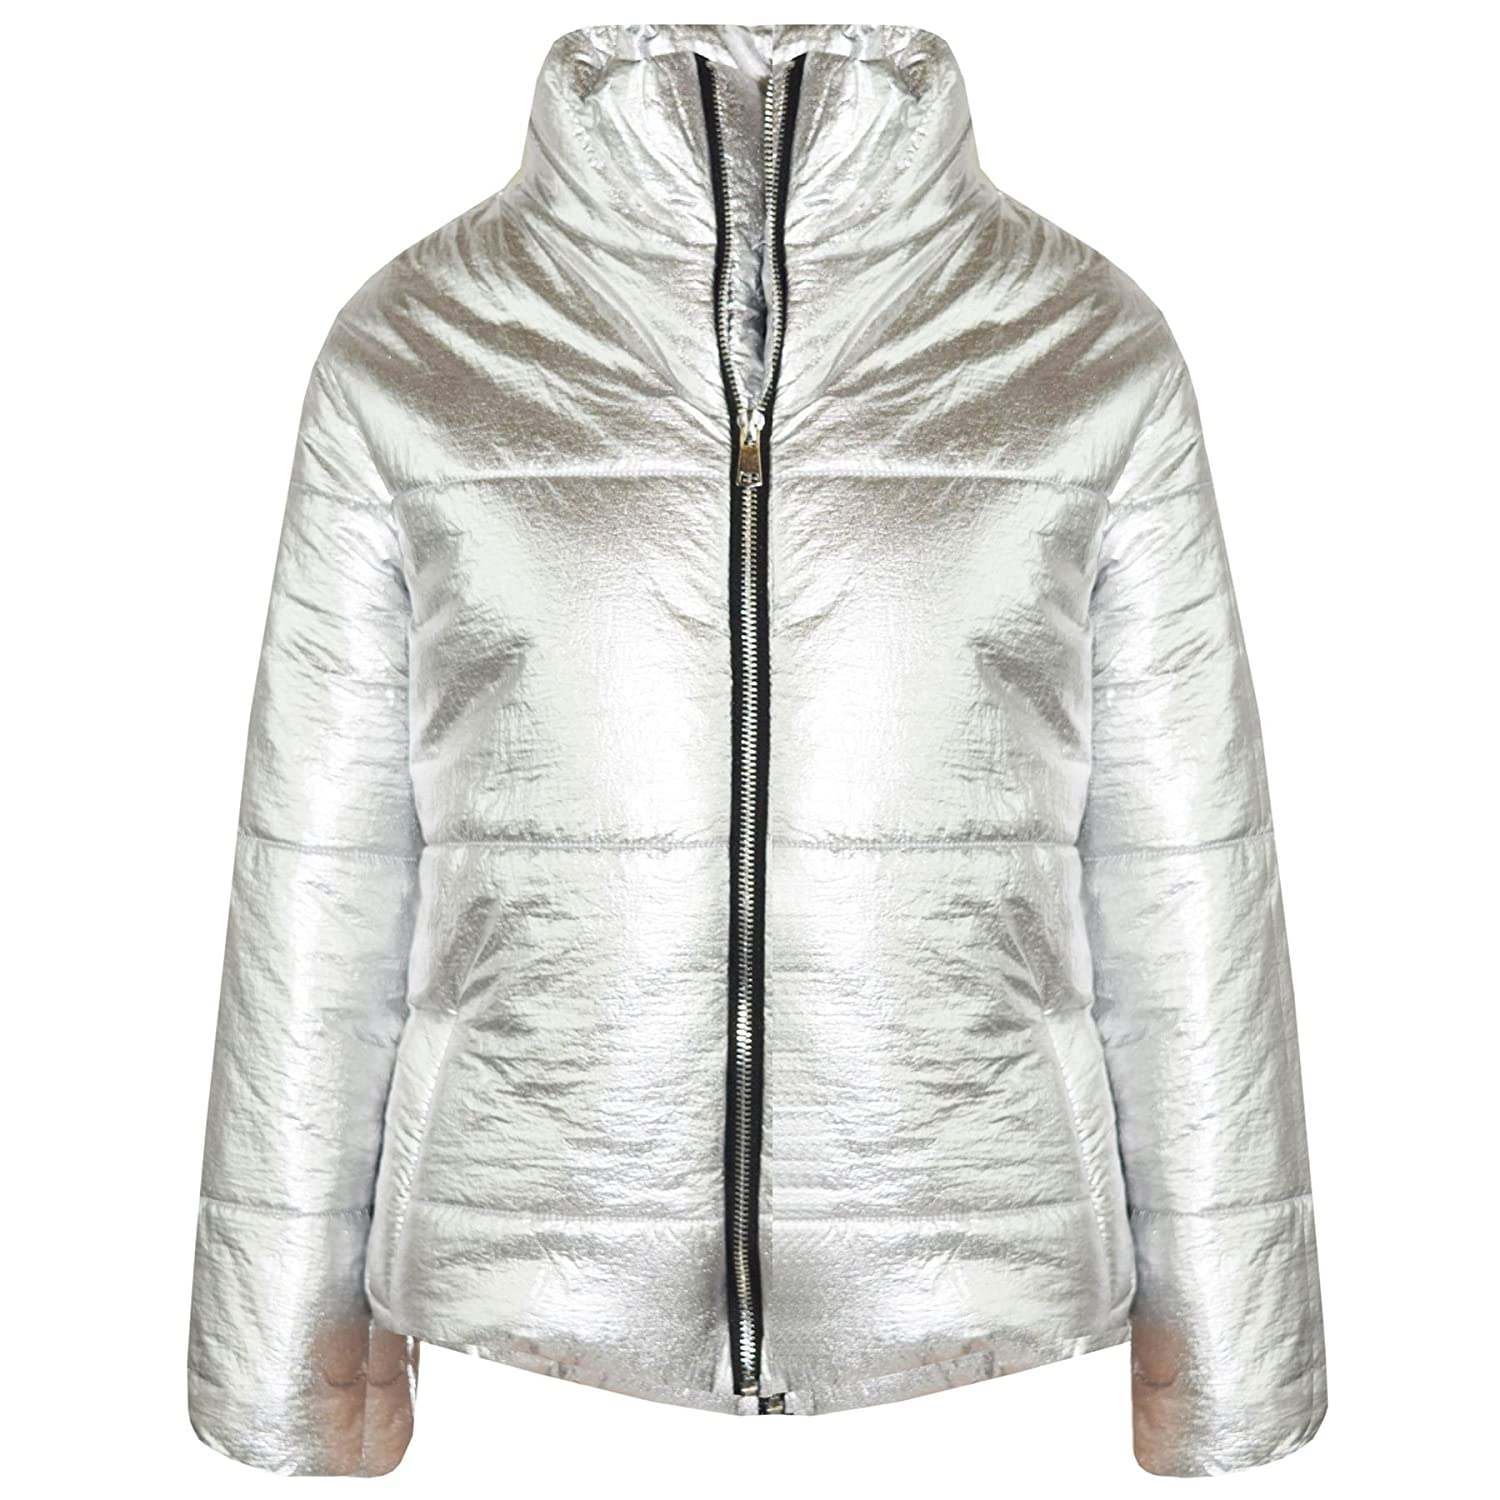 A2Z 4 Kids/® Girls Jacket Kids Metallic Foil Cropped Padded Quilted Puffer Jackets Coats 5-13